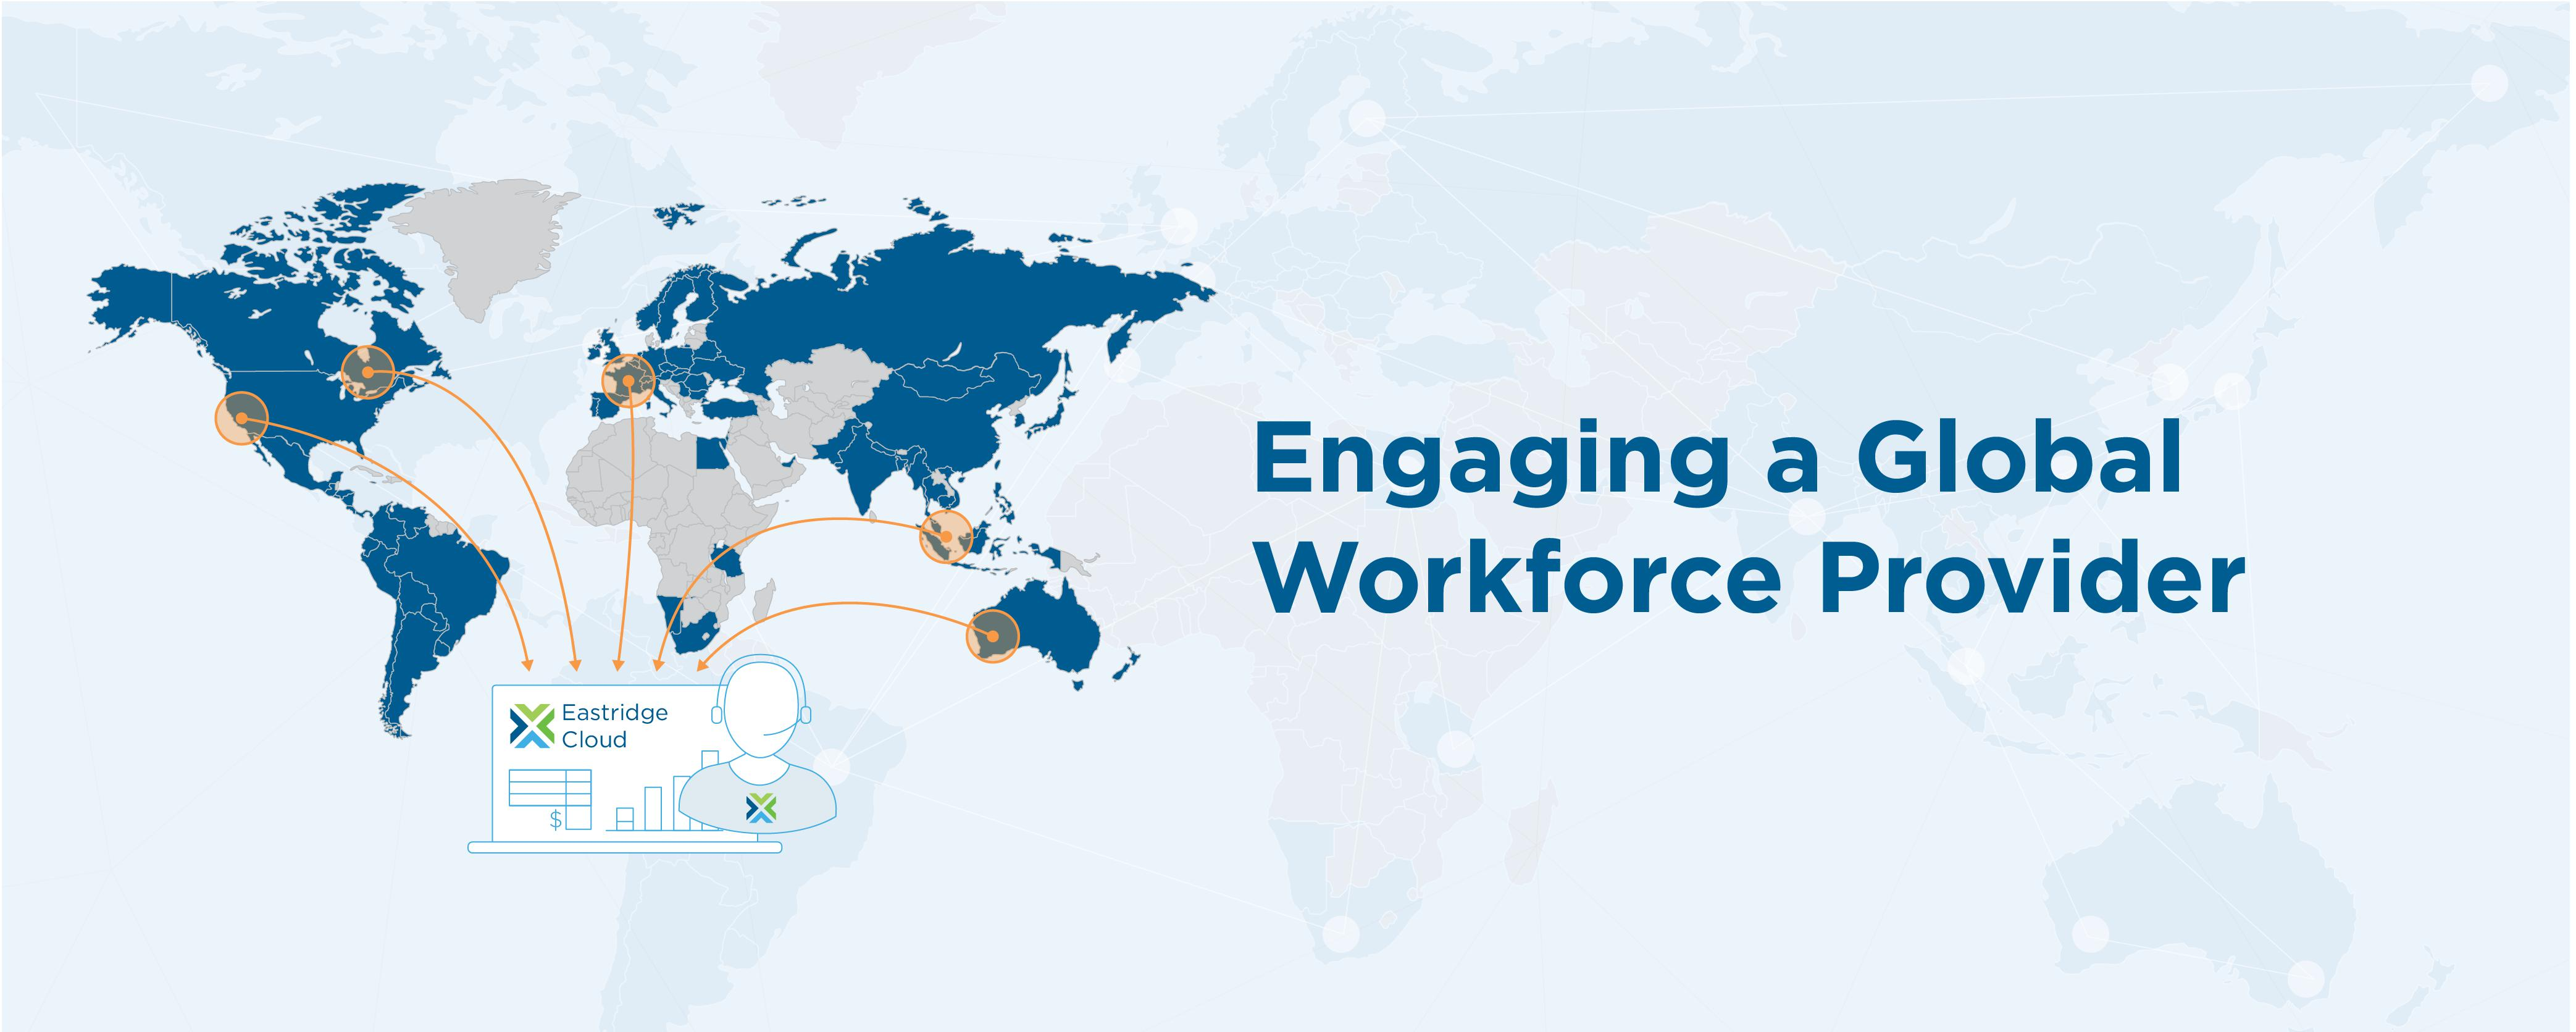 Engaging a Global Workforce Provider